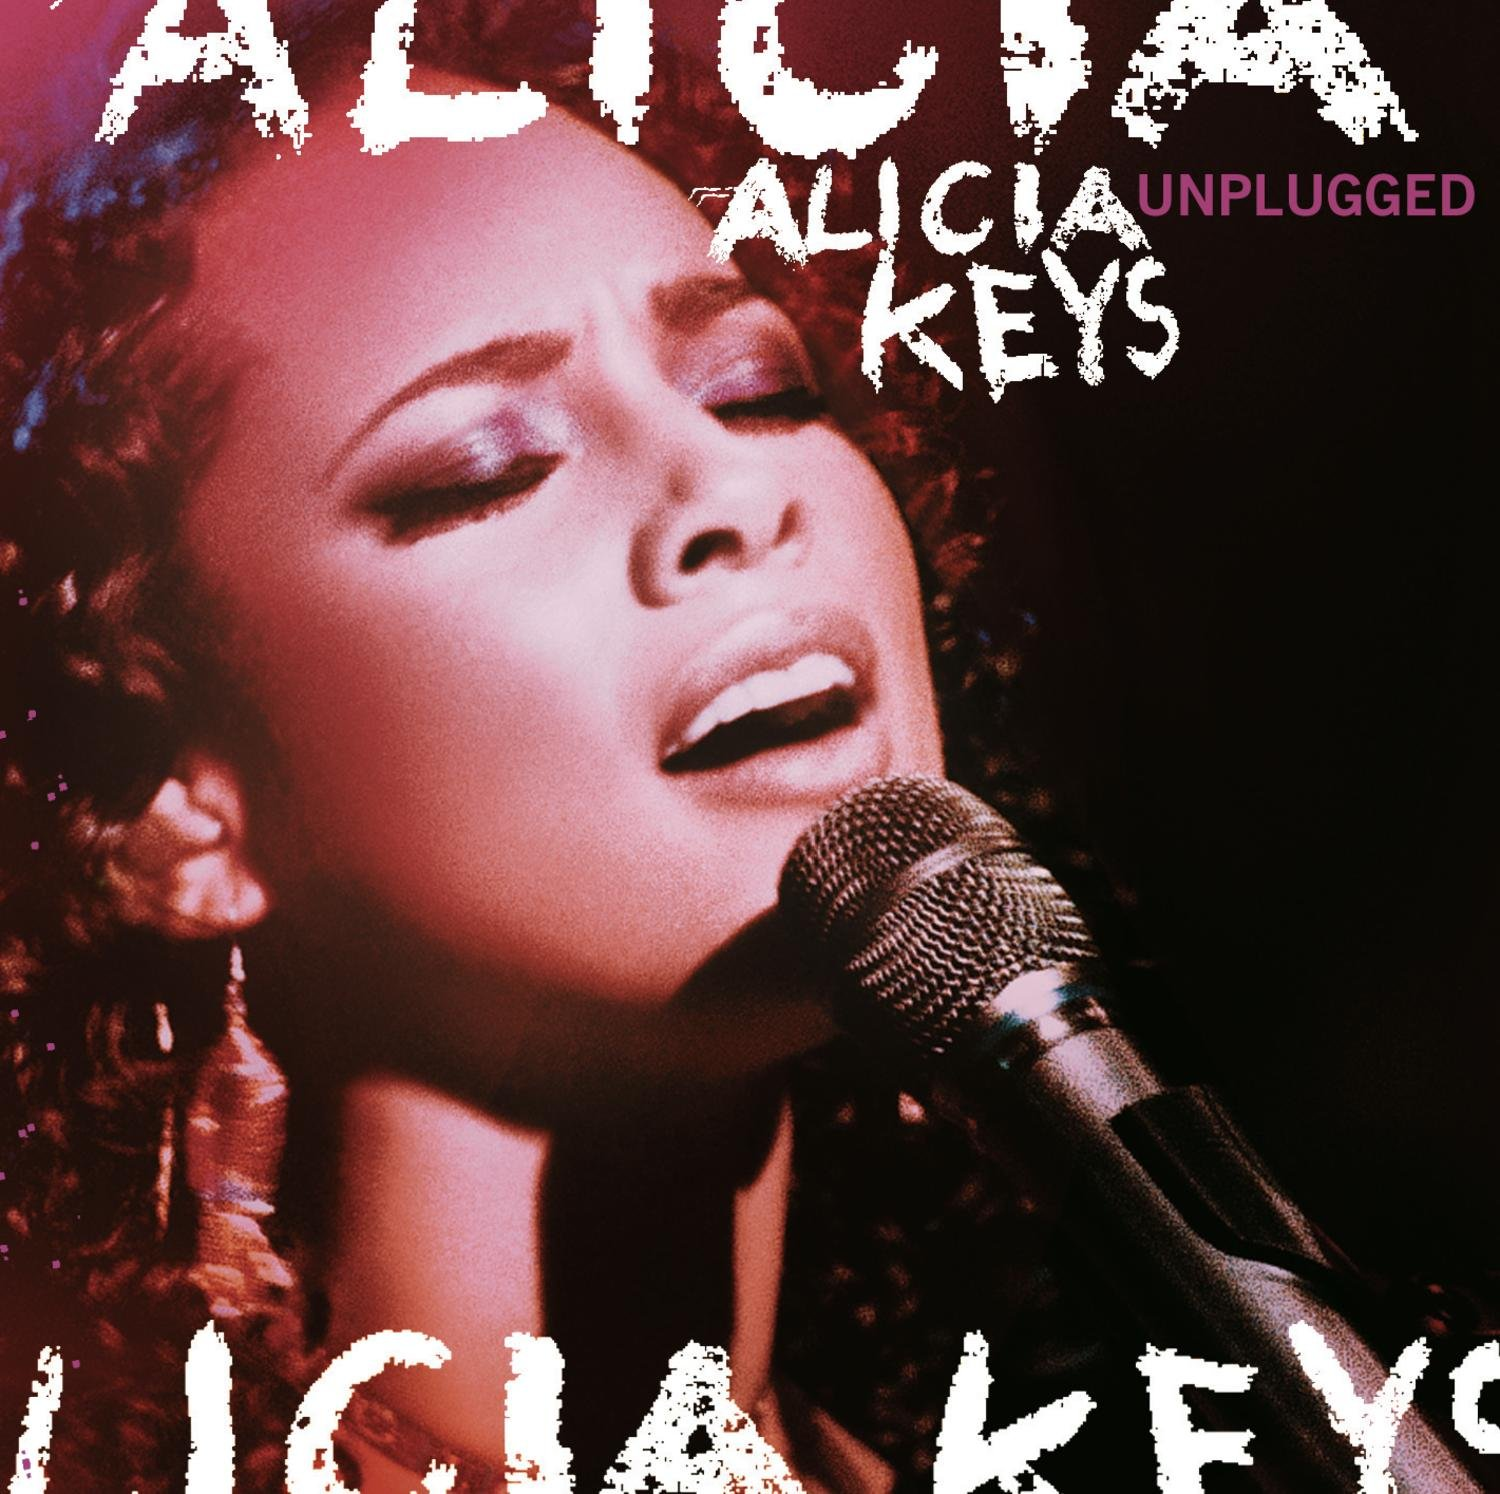 Alicia Keys, Unplugged